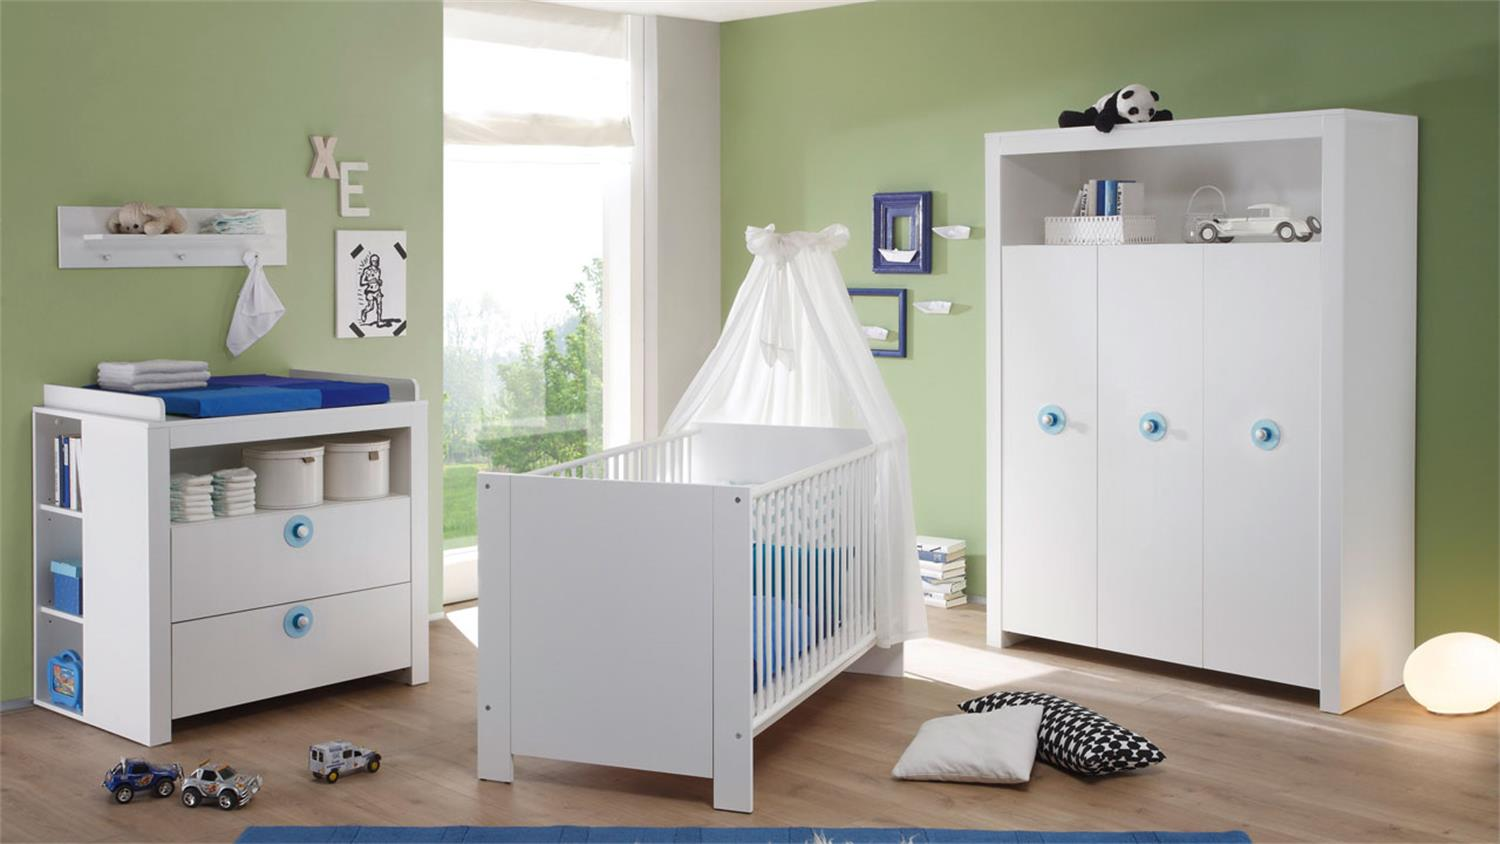 babyzimmerset olivia 5 teilig front und korpus wei griffe blau. Black Bedroom Furniture Sets. Home Design Ideas